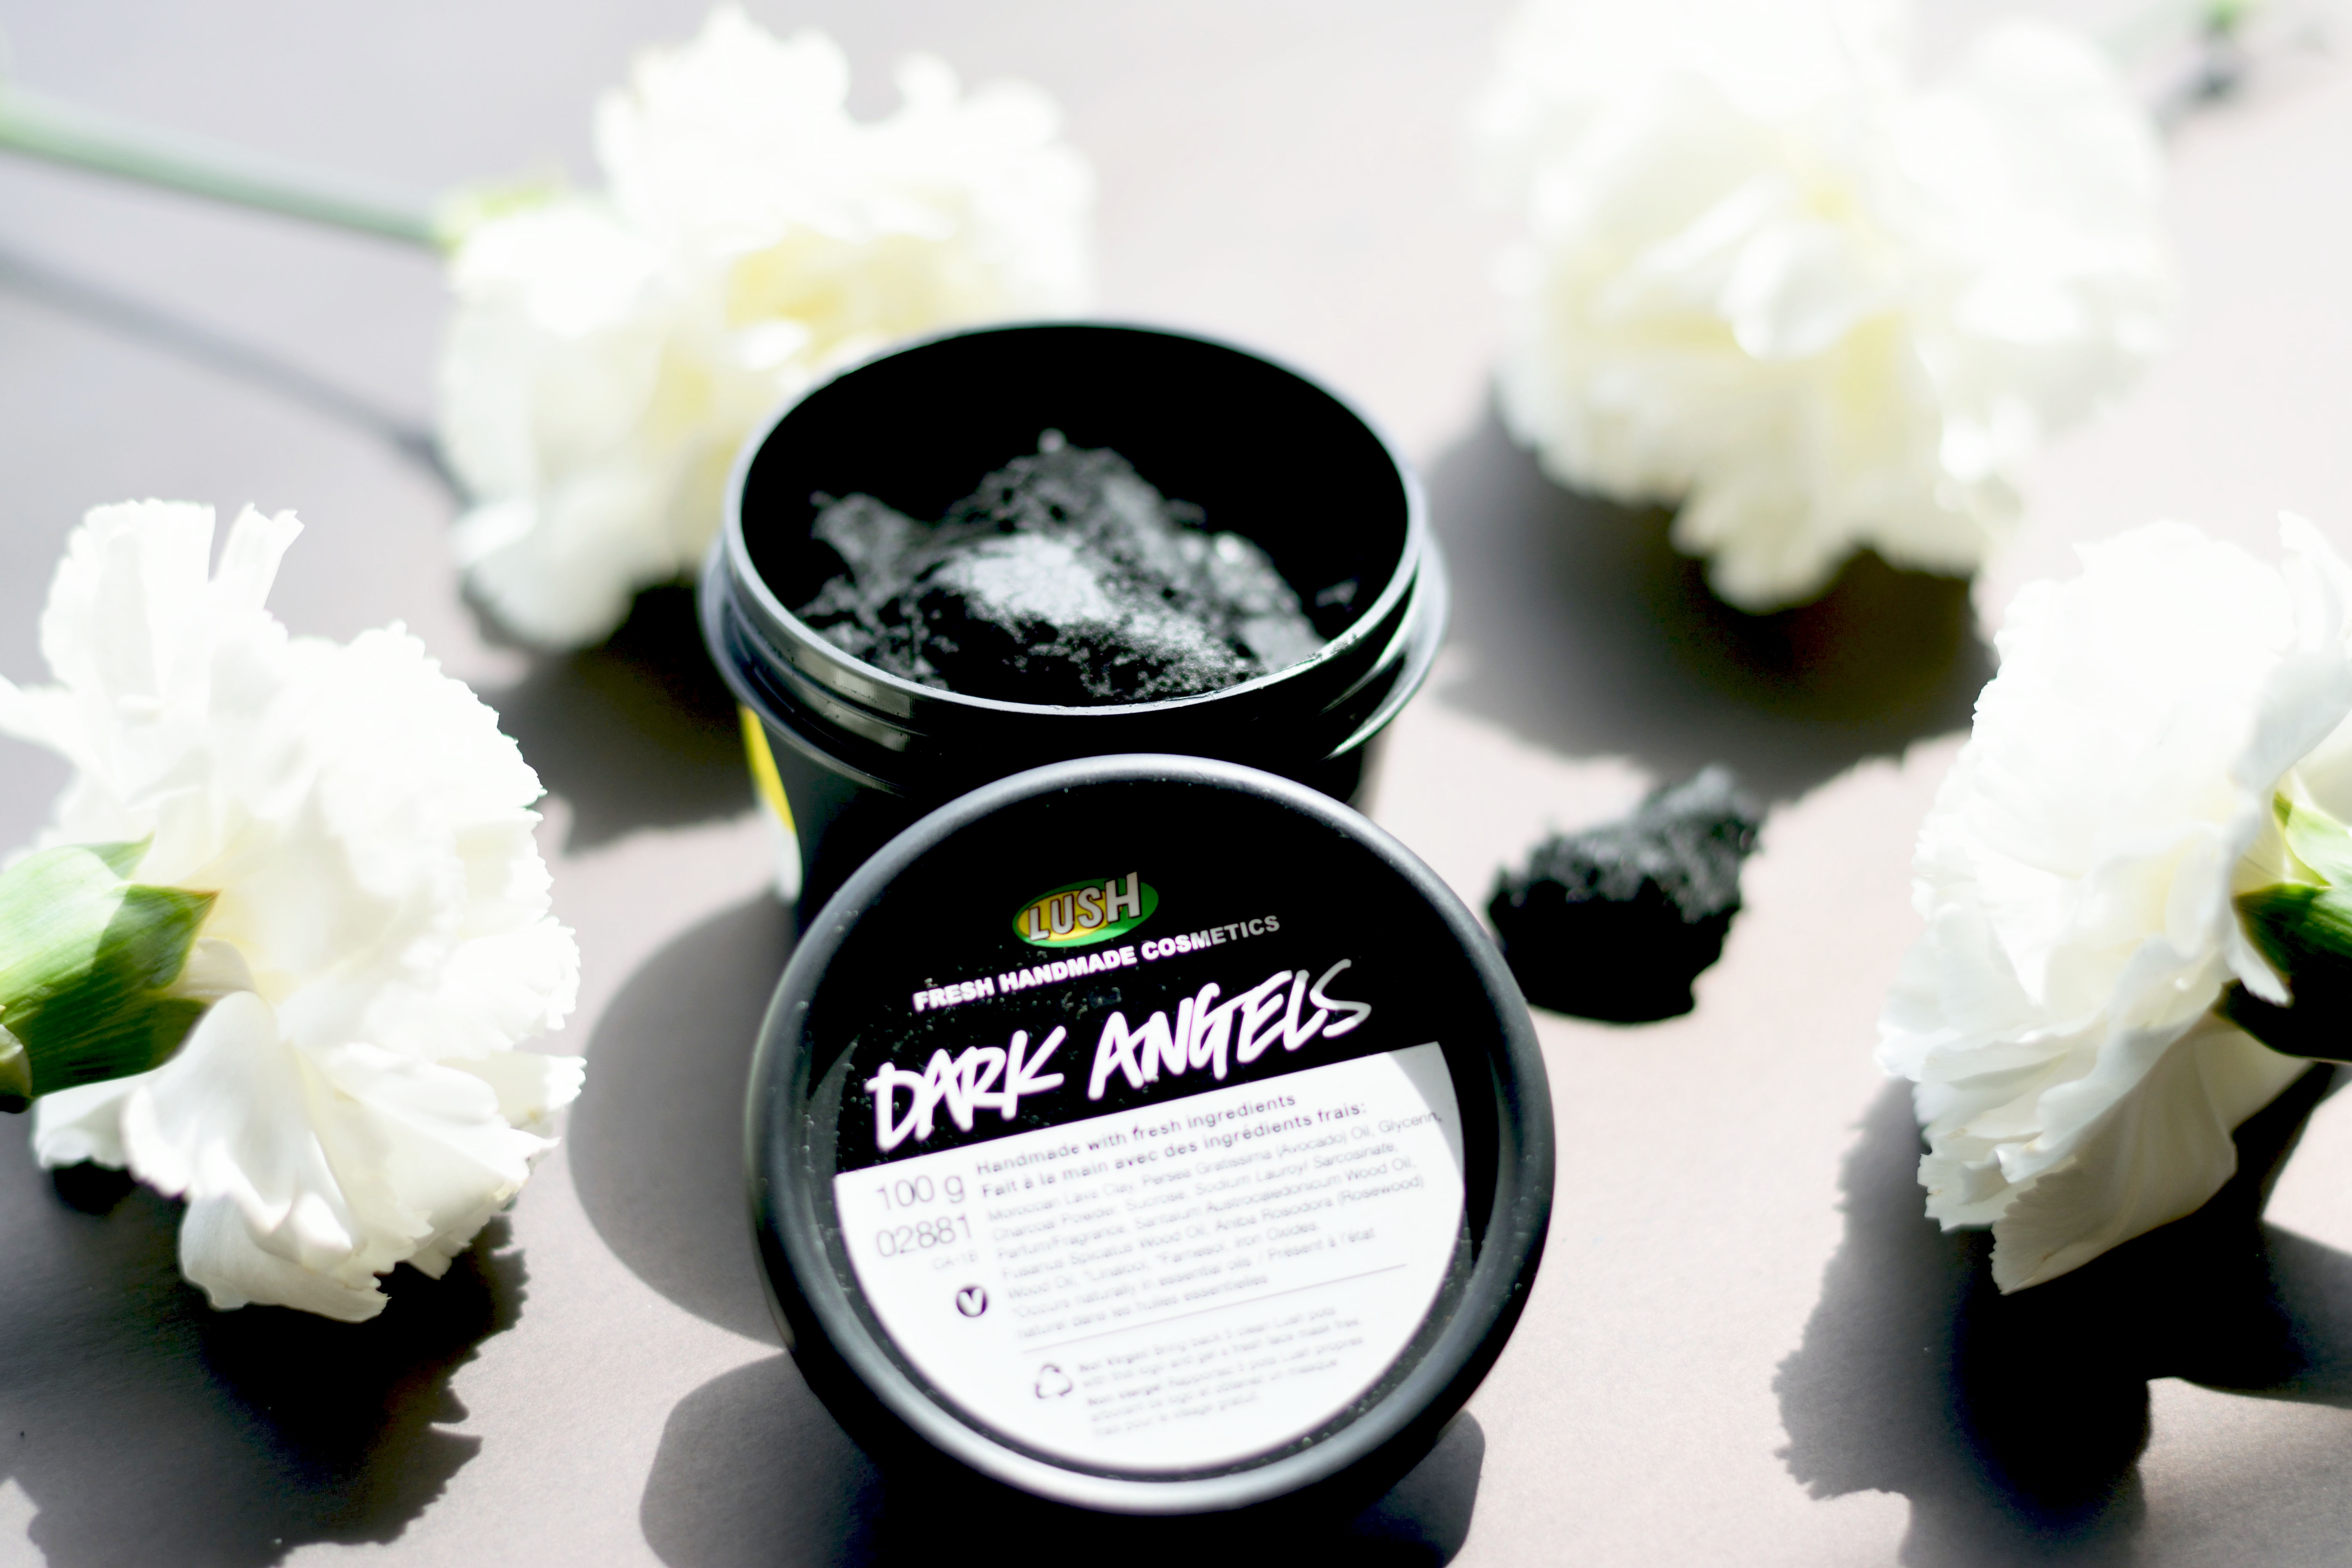 Lush Dark Angels review - The power of Charcoal